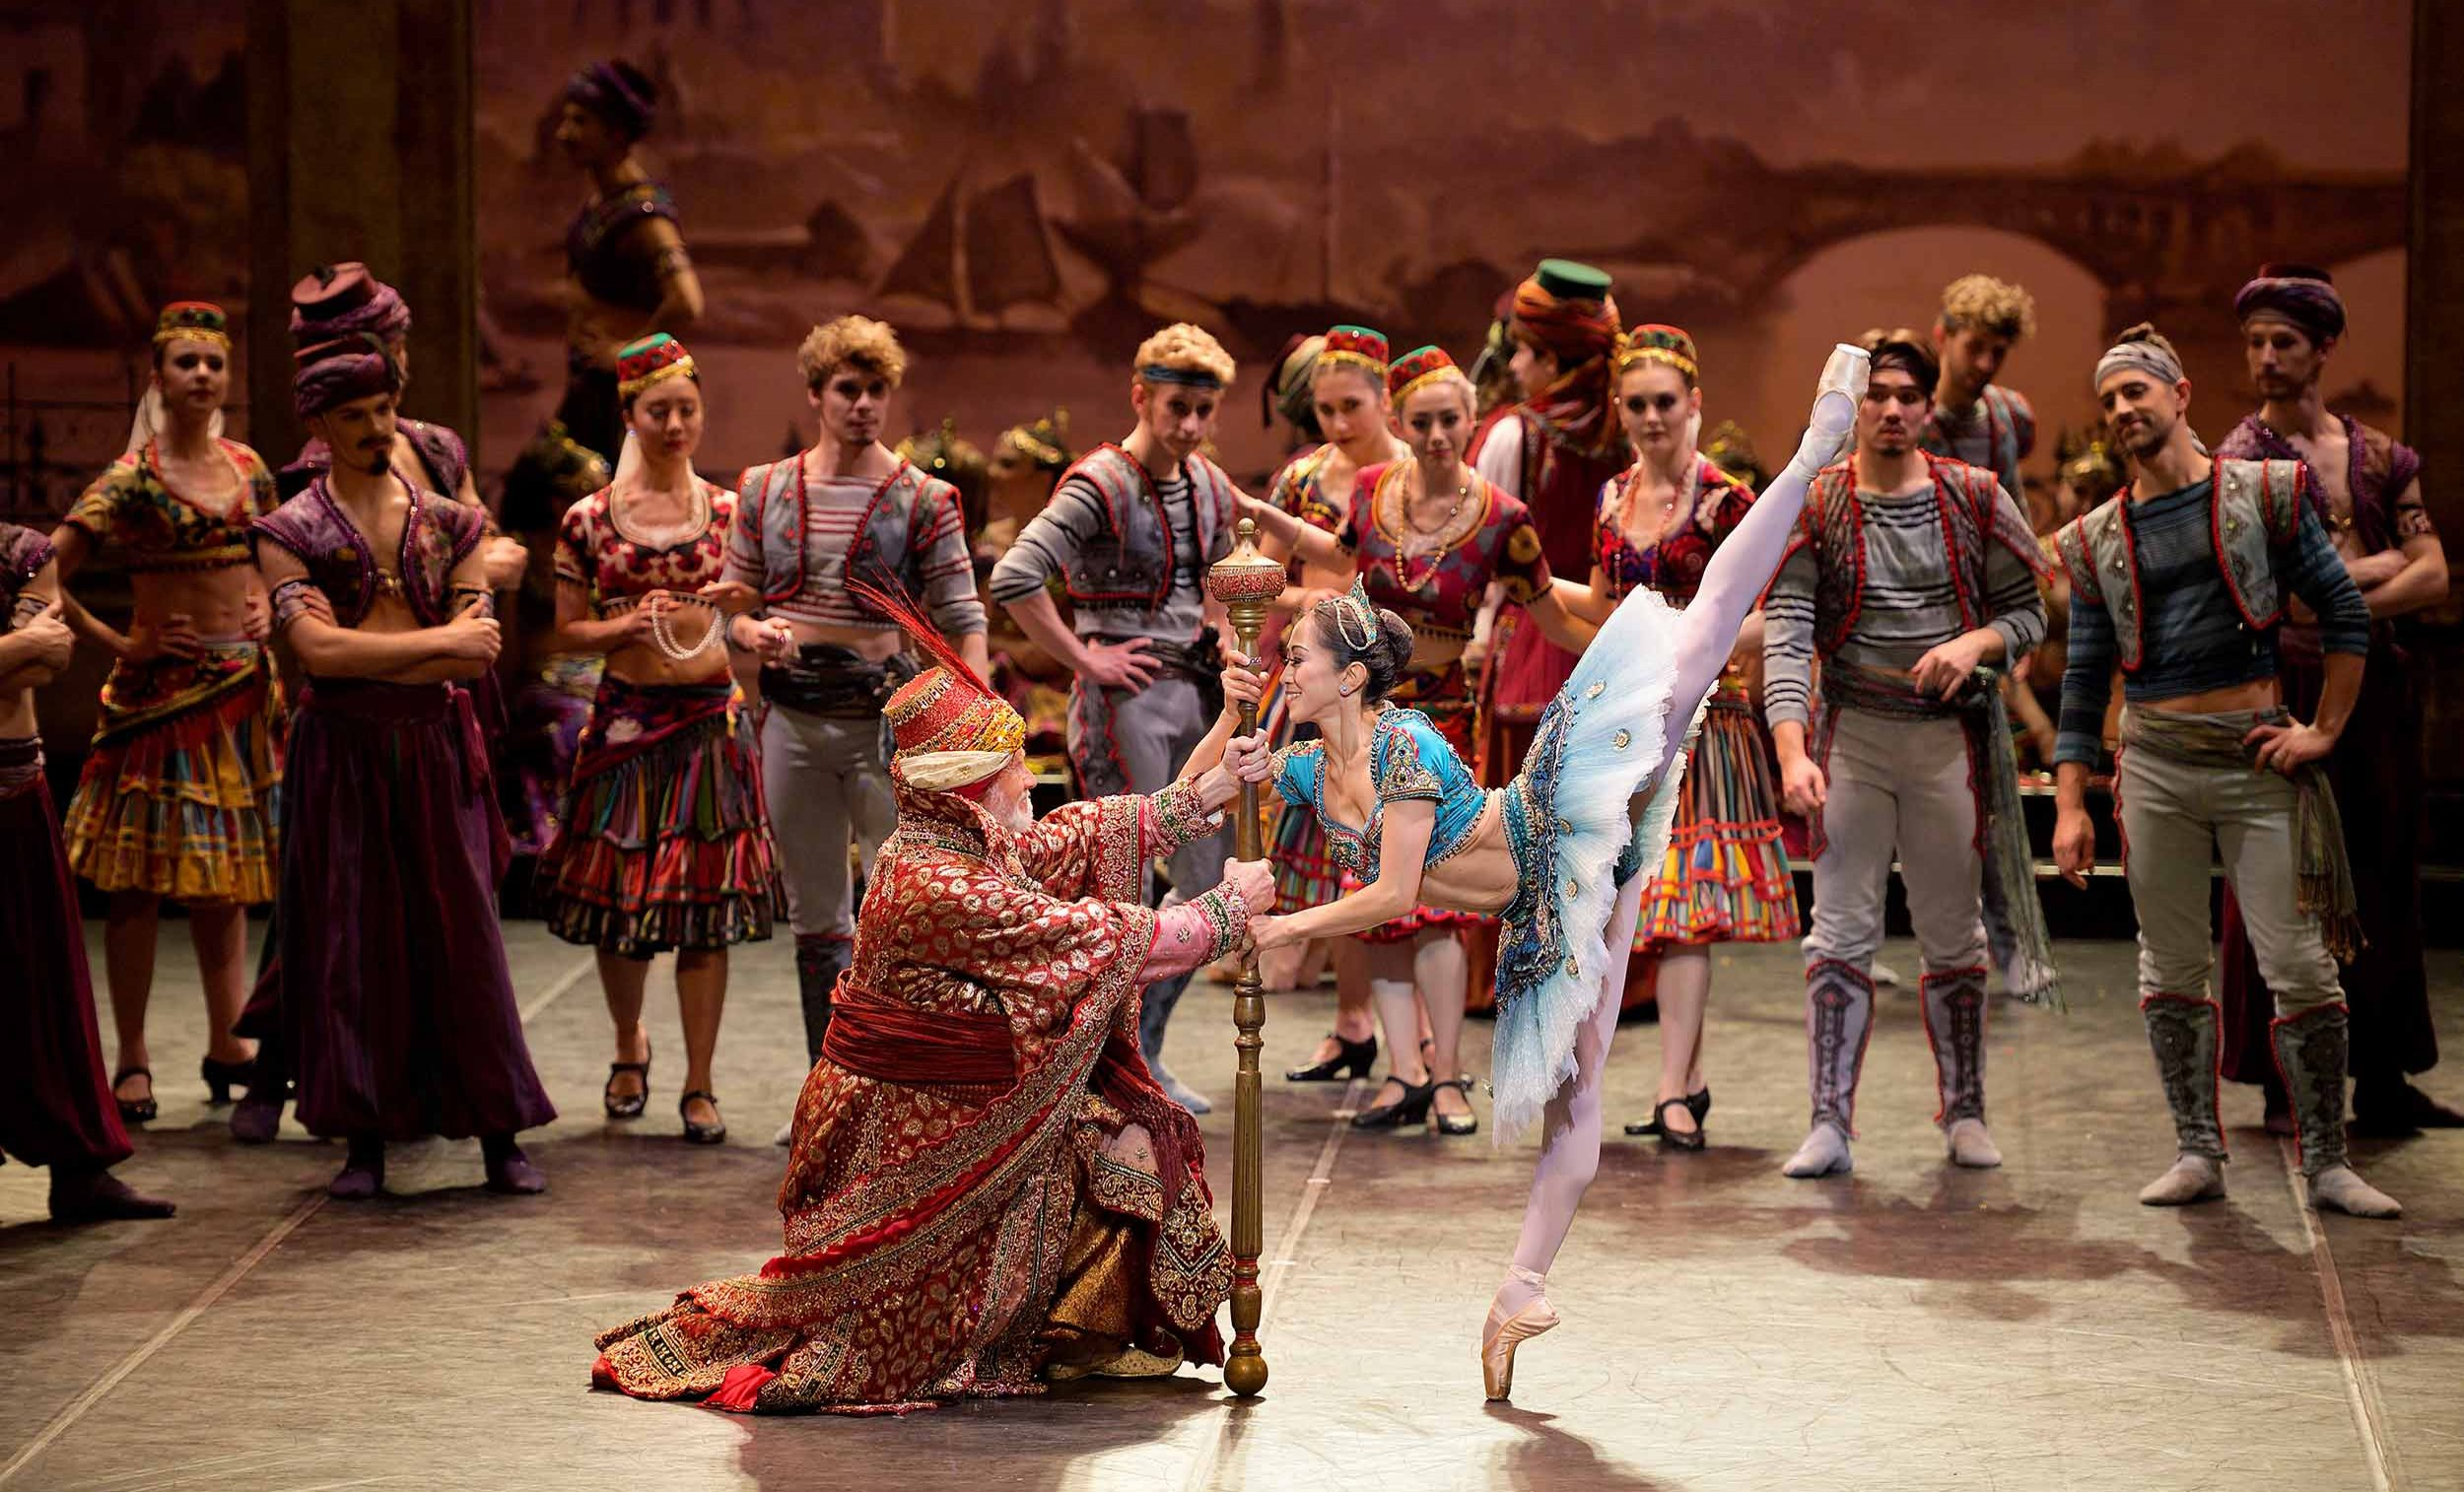 Michael-Coleman-and-Erina-Takahashi-in-Le-Corsaire-(c)-Laurent-Liotardo